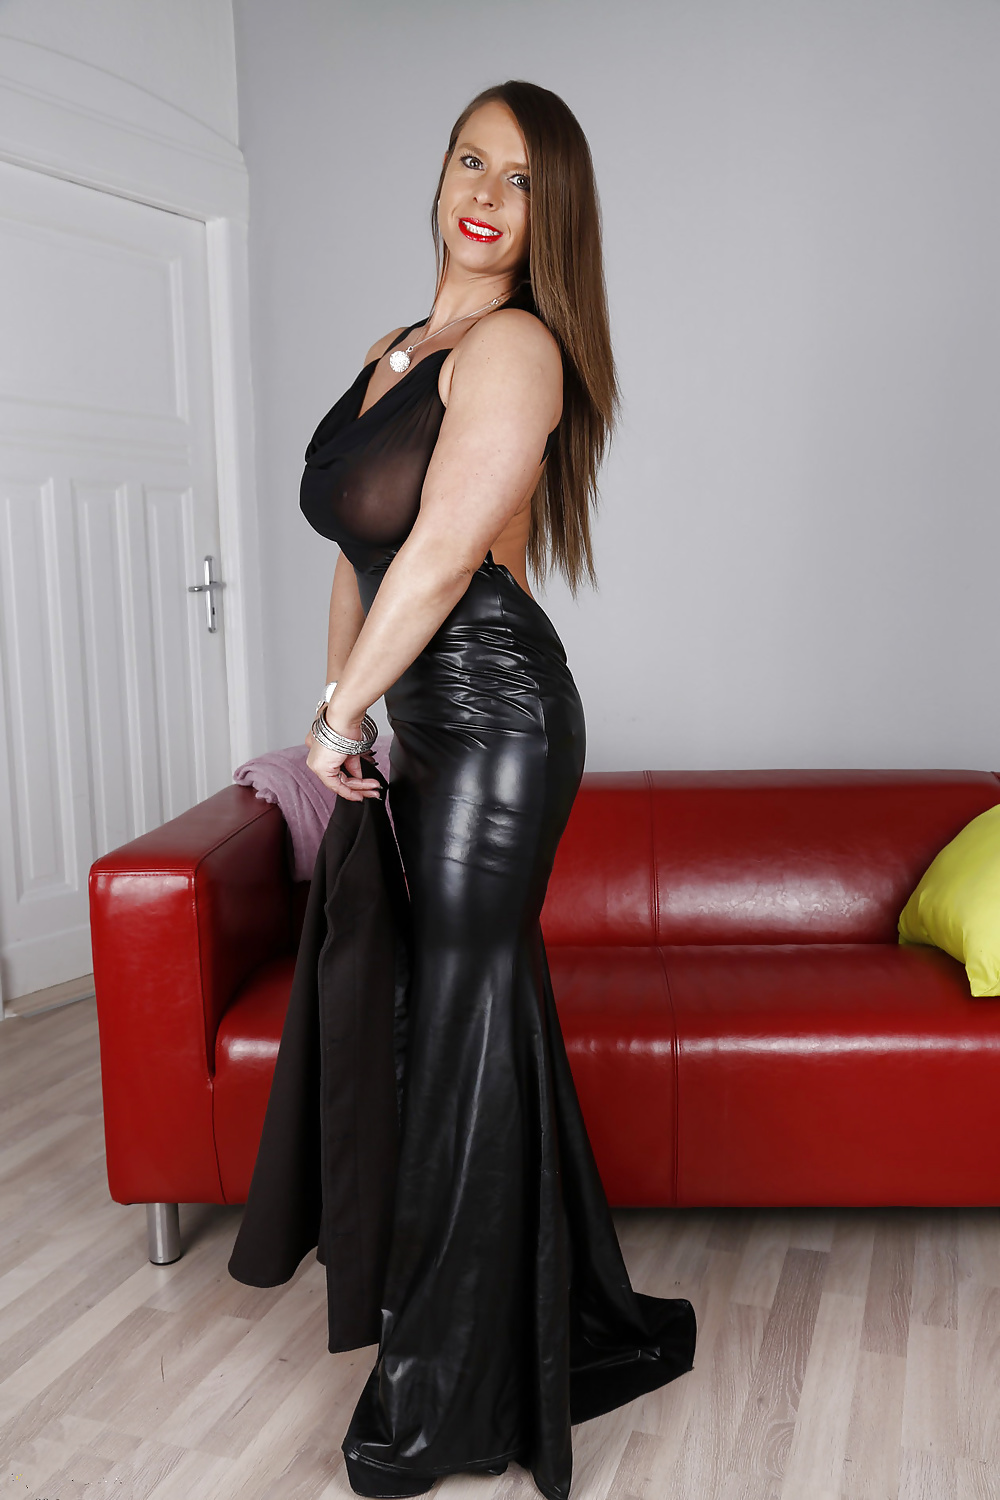 Late Model Super Soft Series Pvc Top Bustier Blouse Sexy Susi Pvc Skirt